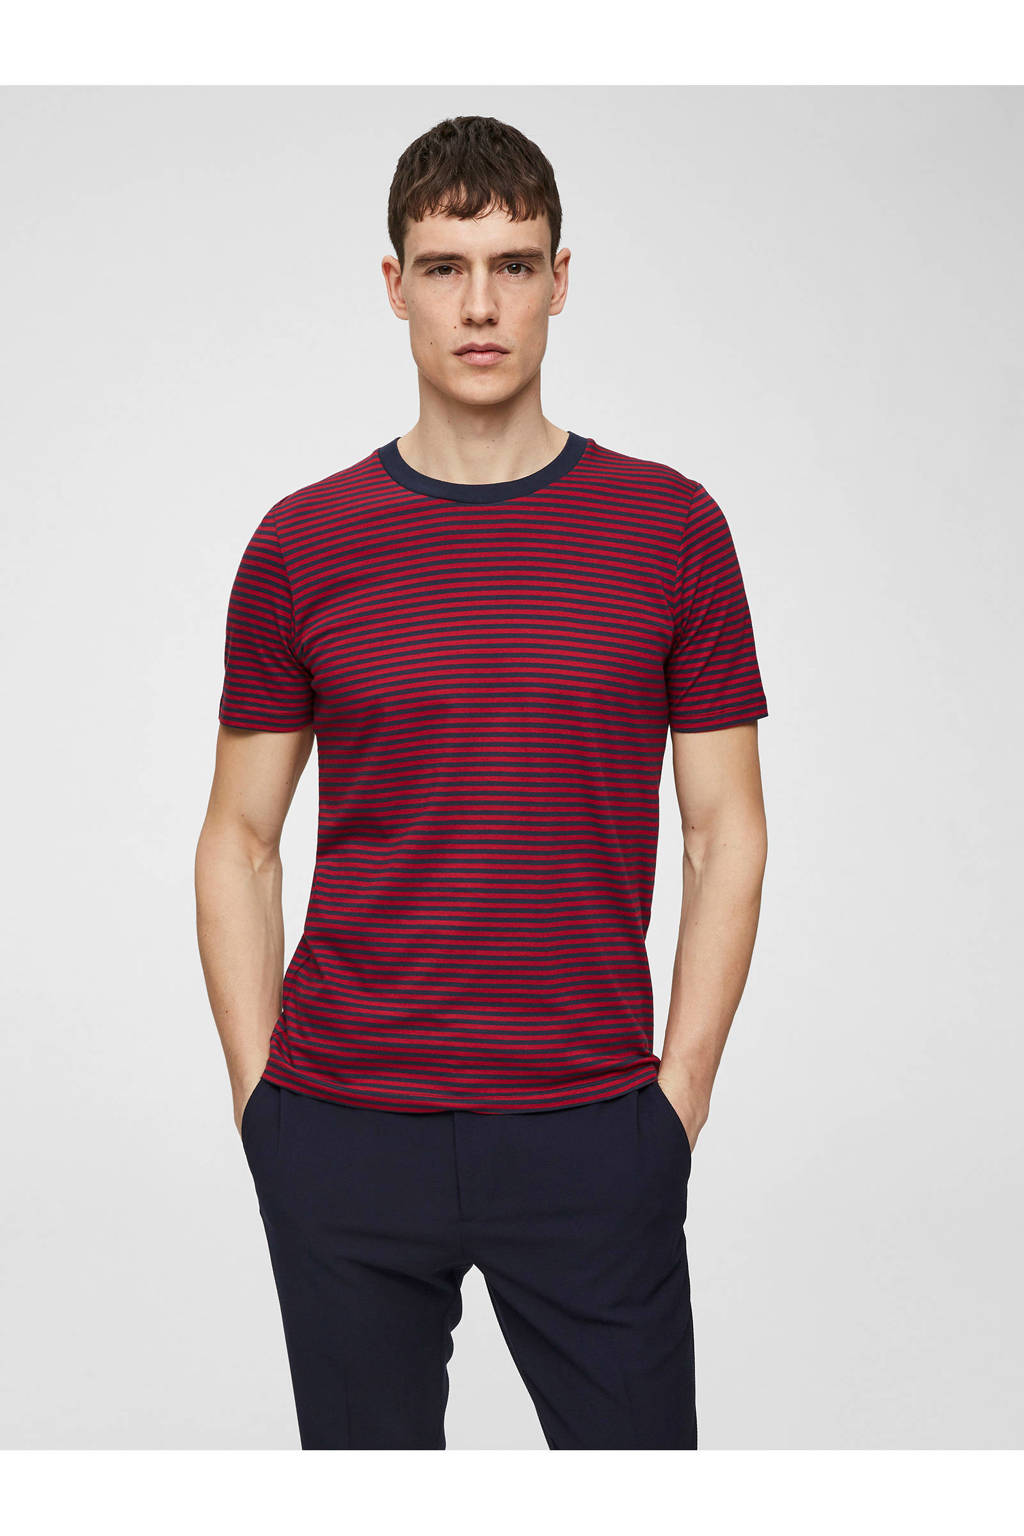 SELECTED HOMME T-shirt, Blauw/rood